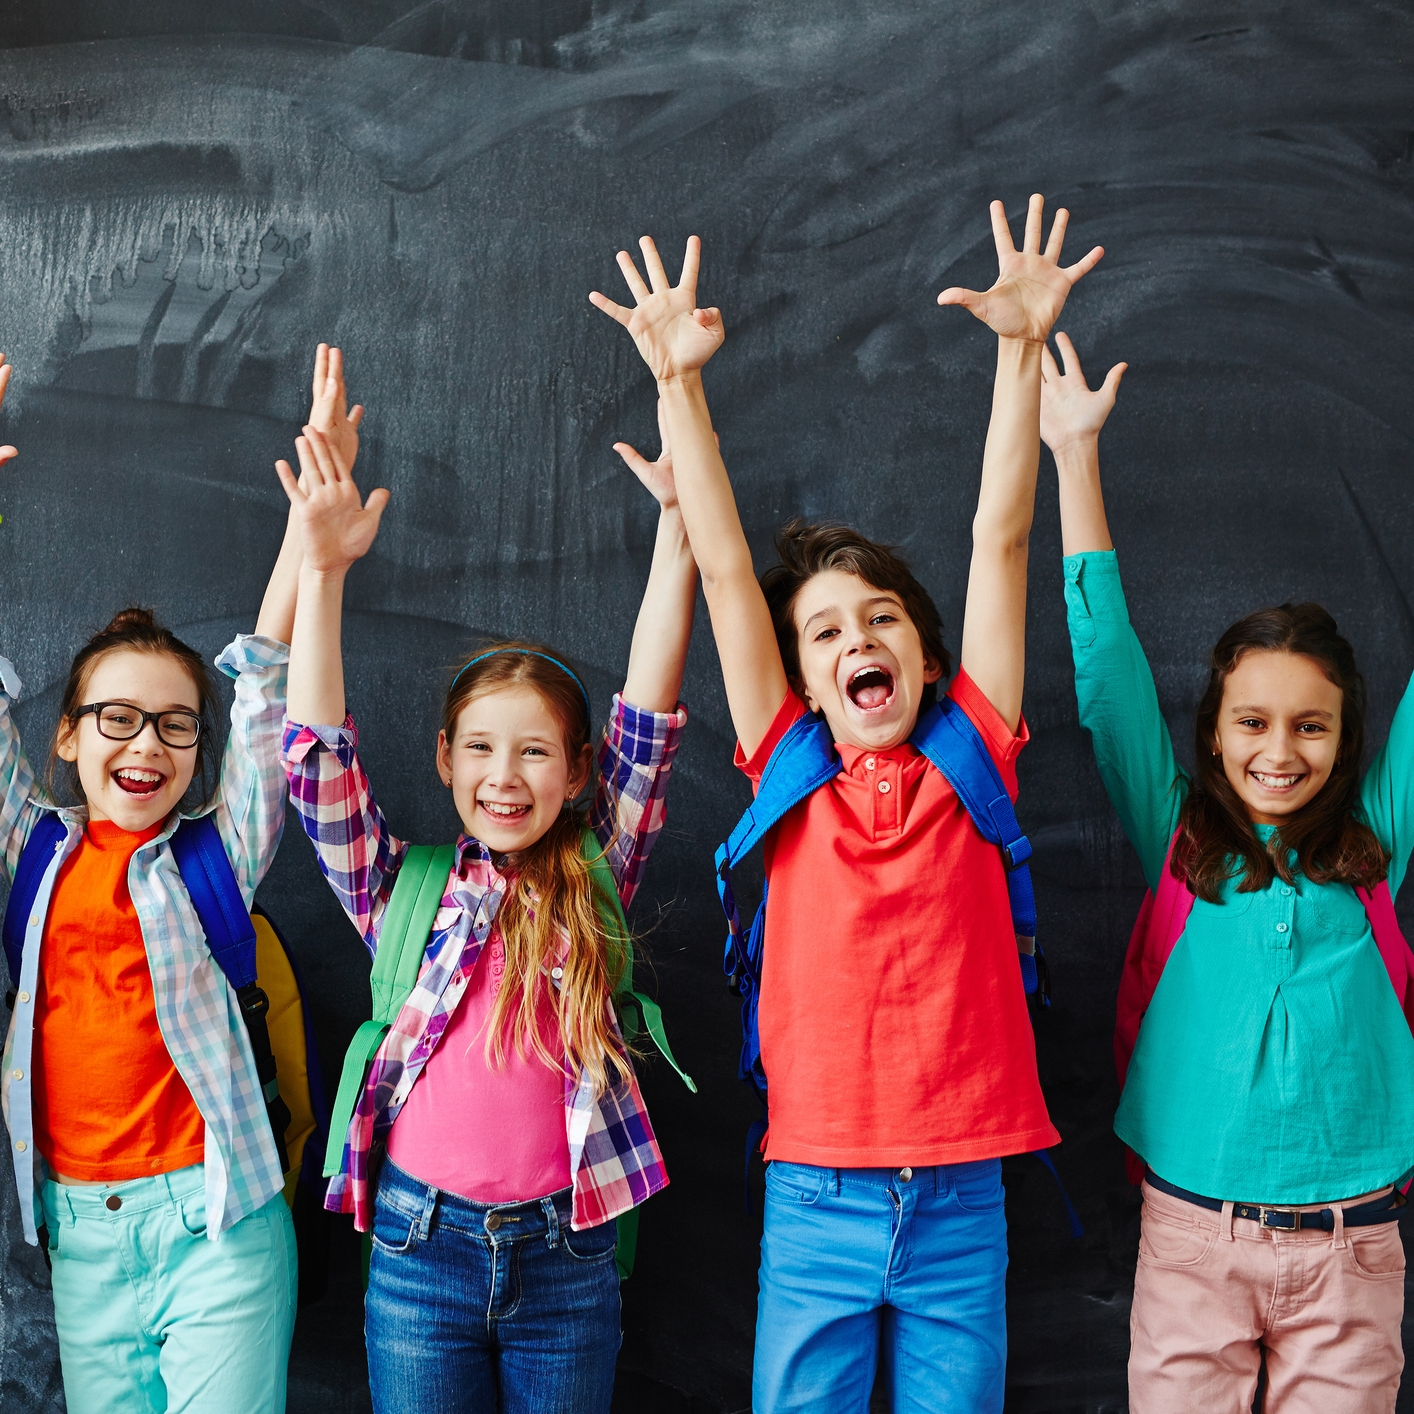 4. Positivity: Every student has unseen potential.Positive feelings lead to optimal functioning. -